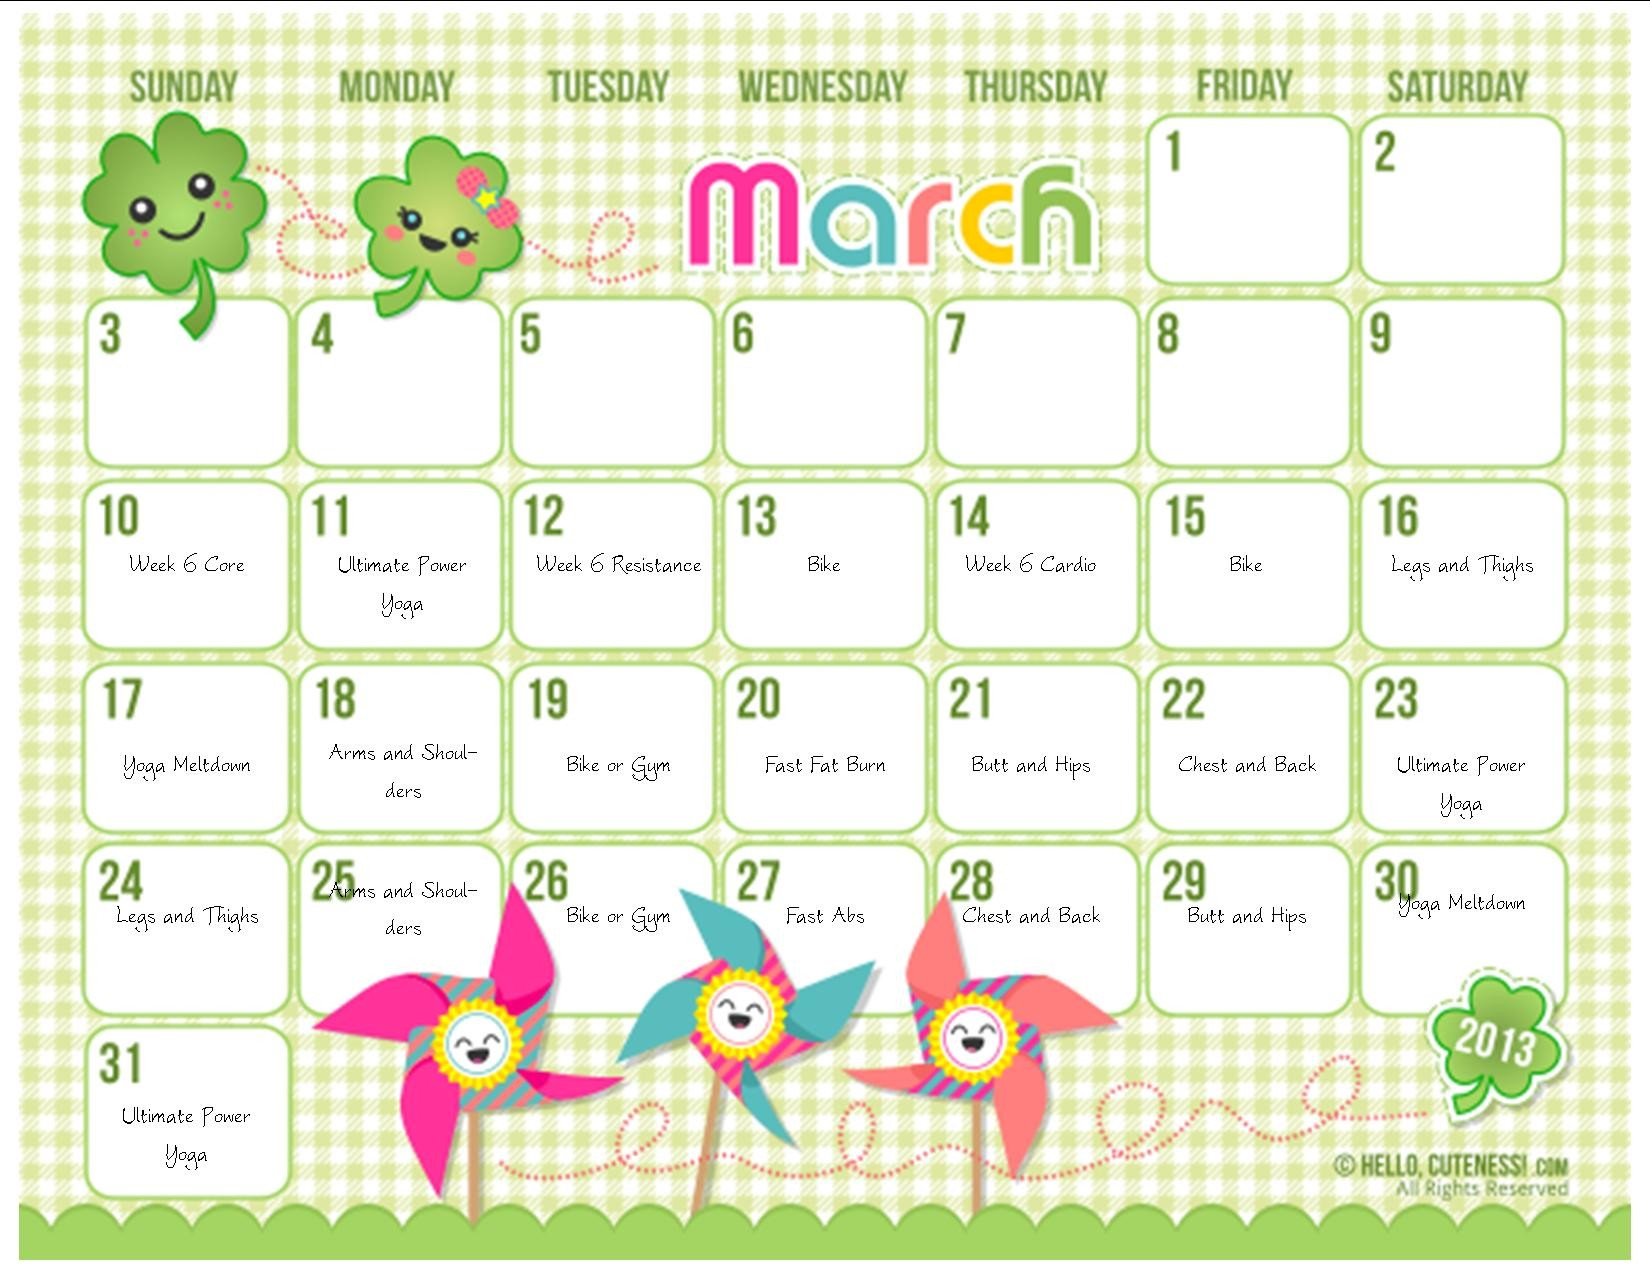 March Calendar Kids Más Arriba-a-fecha Learning Customize Calendar Free Printable Template 2018 Best Of March Calendar Kids Más Recientes Free Printable toddler Weekly Calendar Projectsinparenting